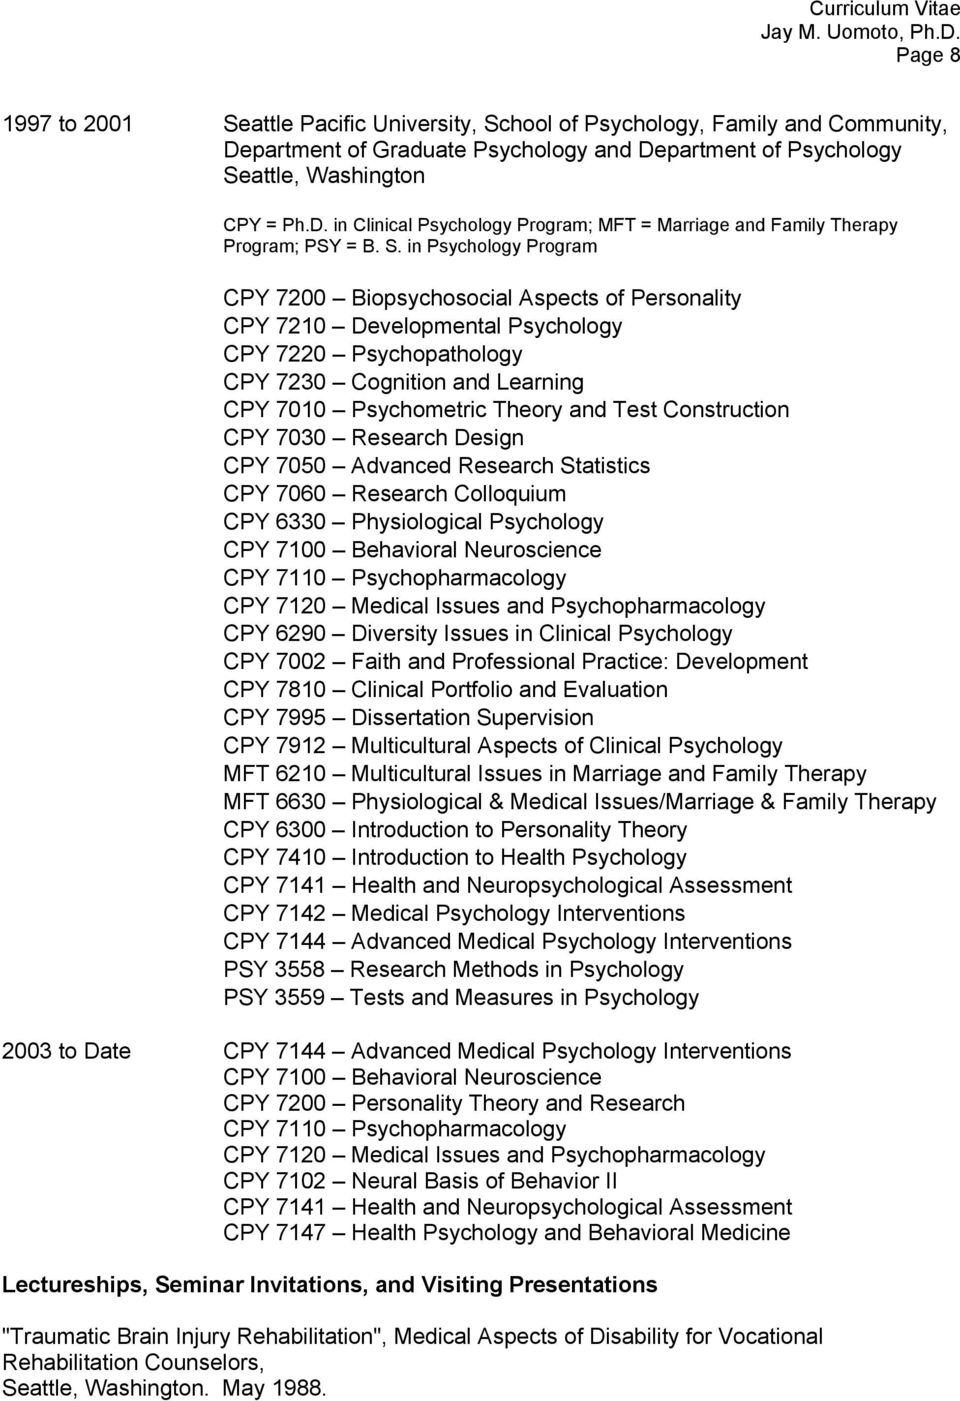 Test Construction CPY 7030 Research Design CPY 7050 Advanced Research Statistics CPY 7060 Research Colloquium CPY 6330 Physiological Psychology CPY 7100 Behavioral Neuroscience CPY 7110